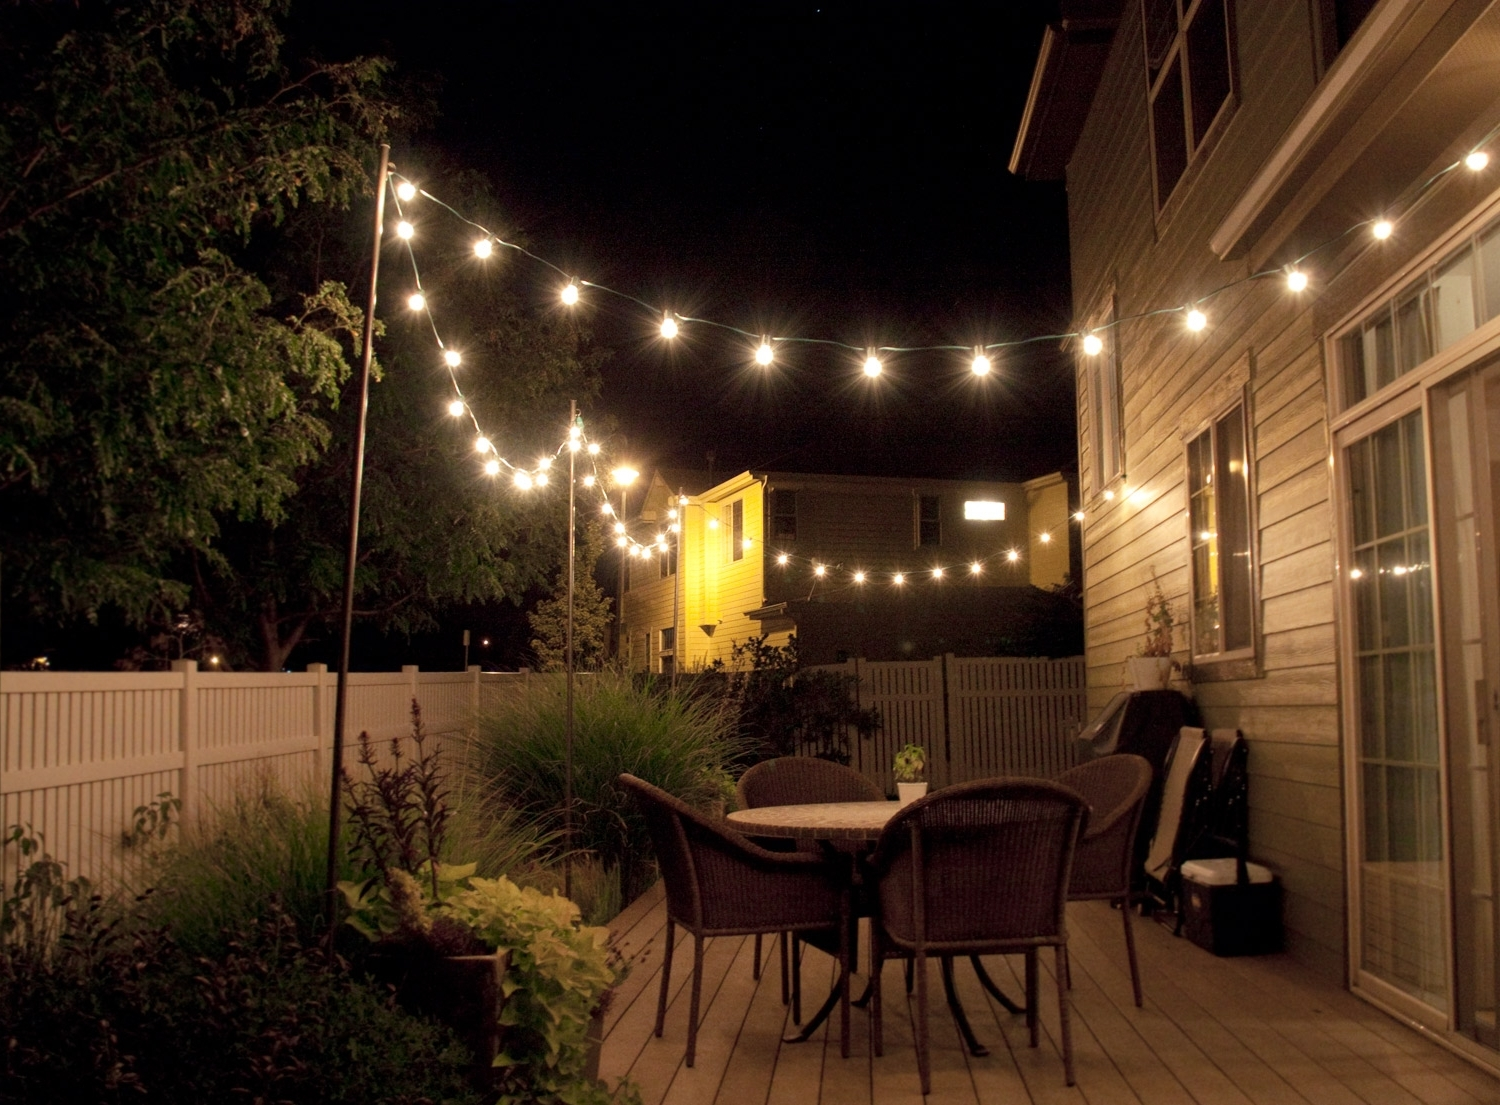 Outdoor Lanterns For Porch Within Latest Innovative Outdoor Hanging Porch Lights To Make Your Home Look (View 12 of 20)